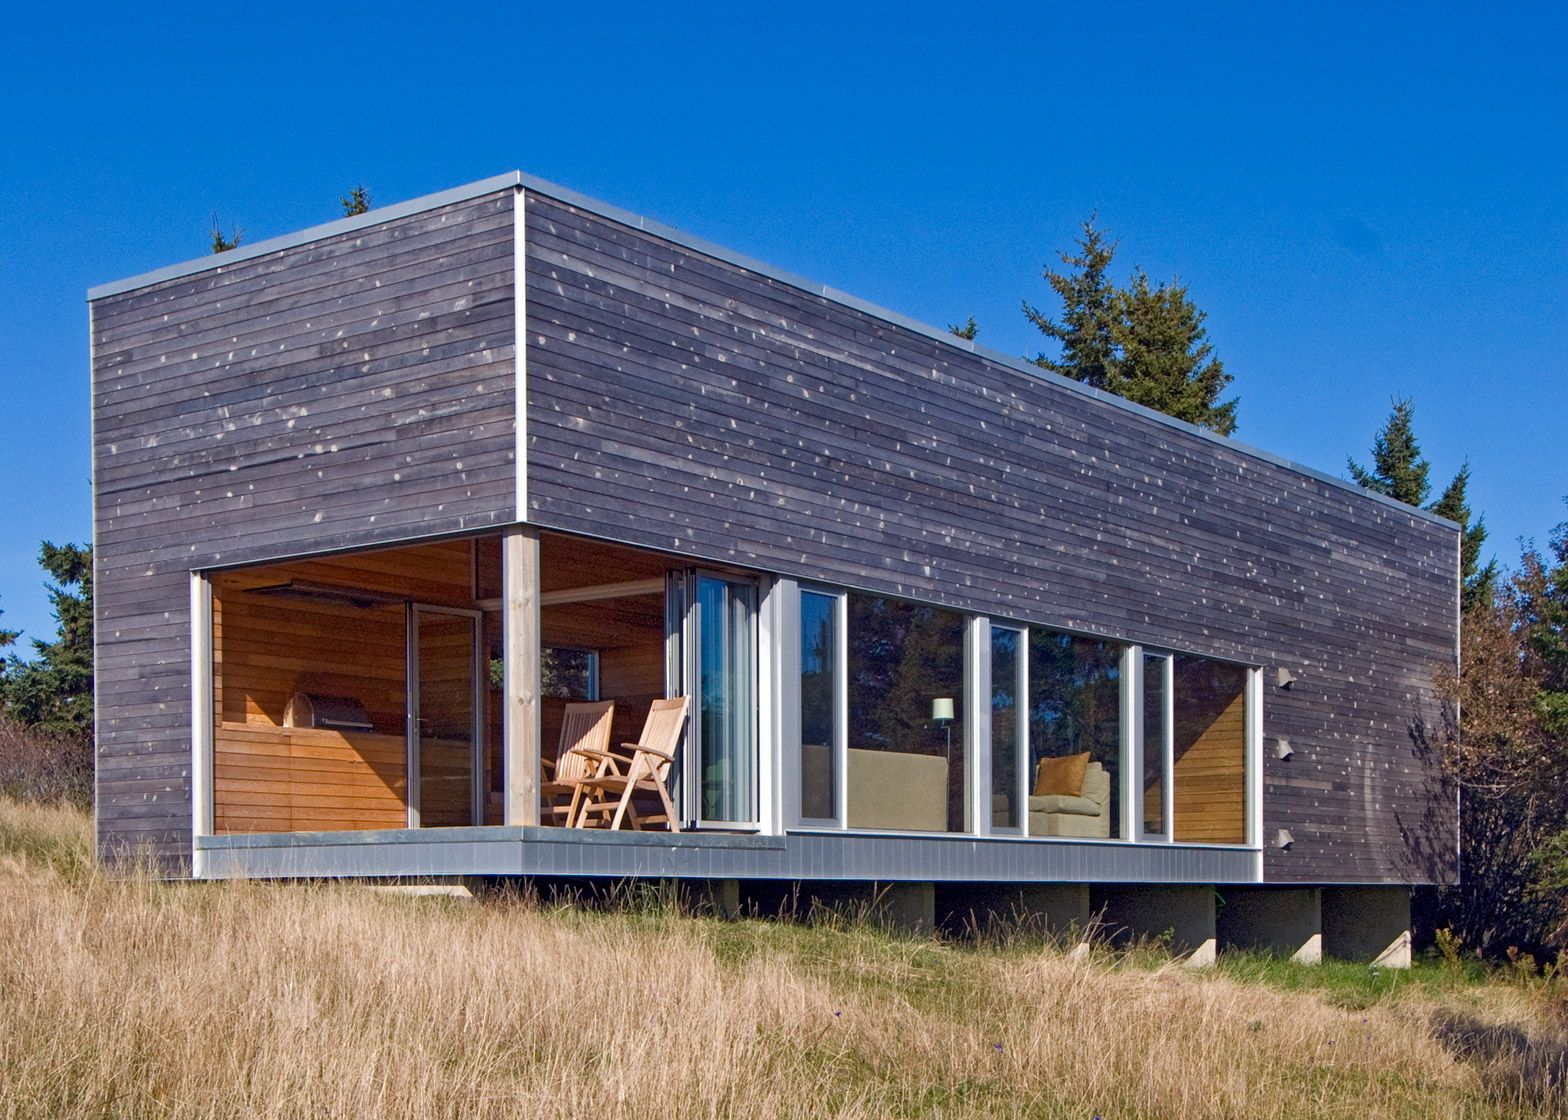 This Timber Clad Gym And Spa Building Was Designed By Mackay Lyons Sweetapple Architects To Accompany A Residence On Nova Scotia S Atlantic Coast 画像あり 家